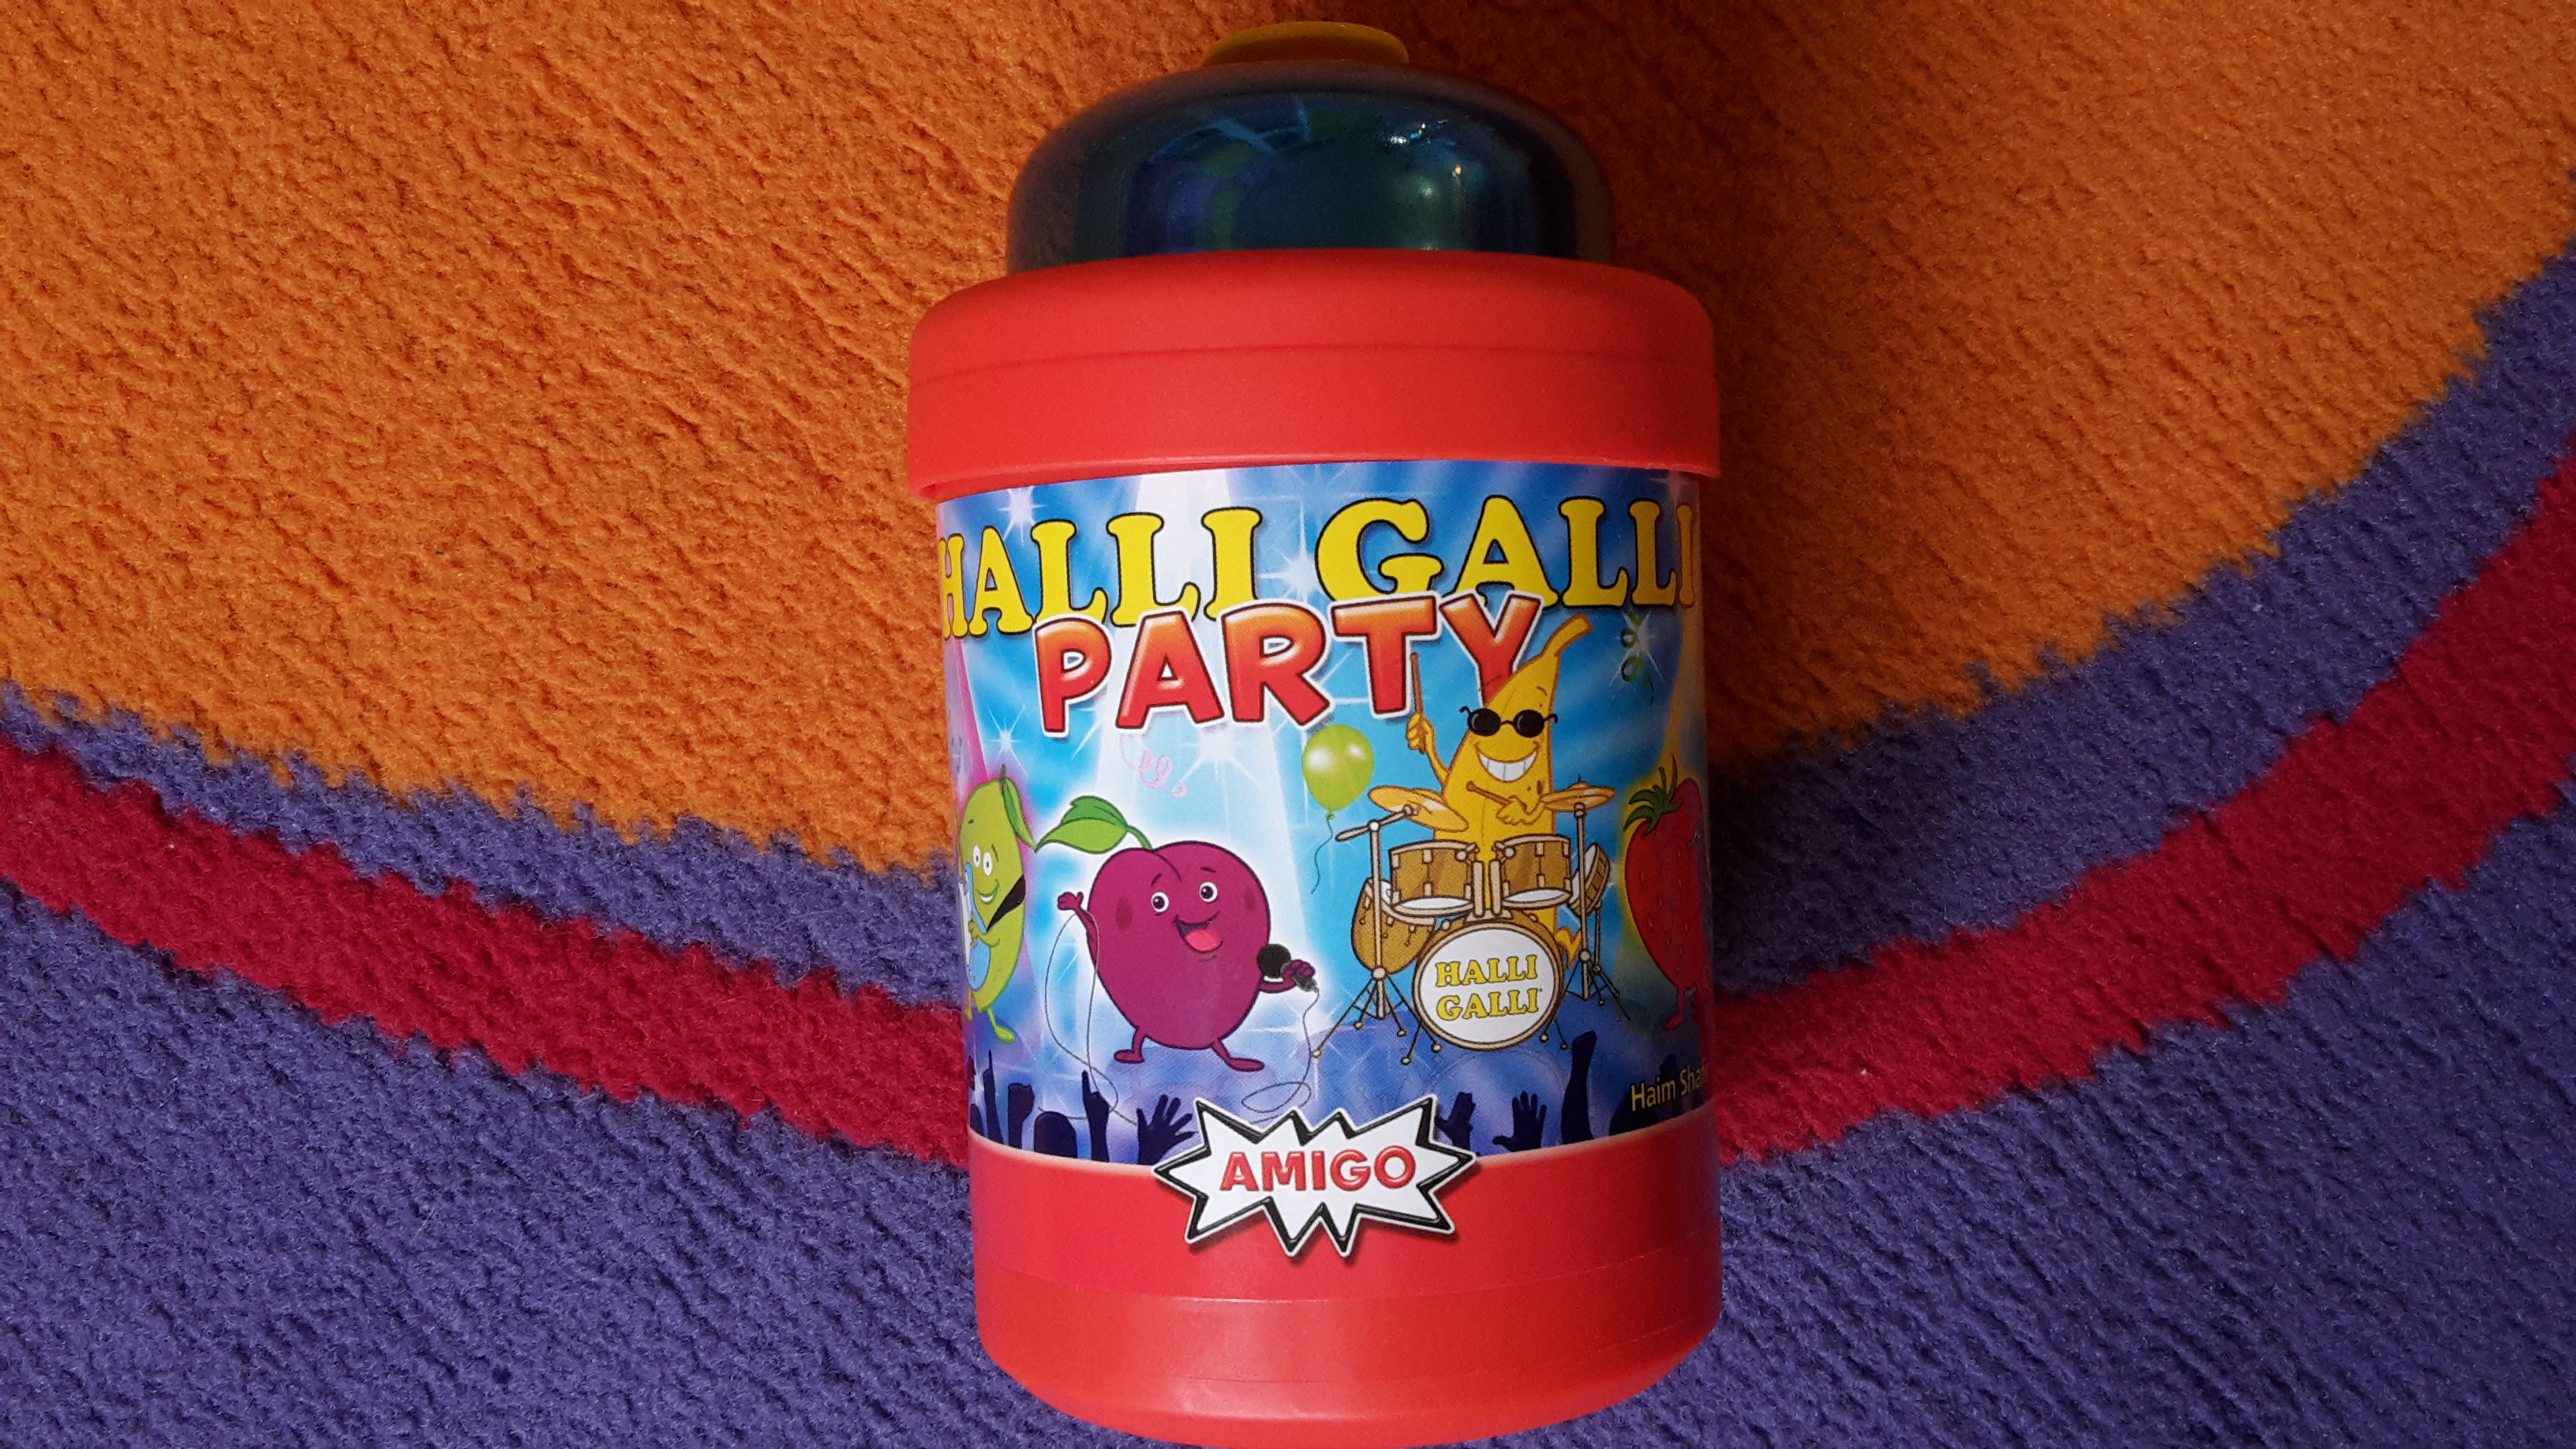 HALLI GALLI Party – Von AMIGO